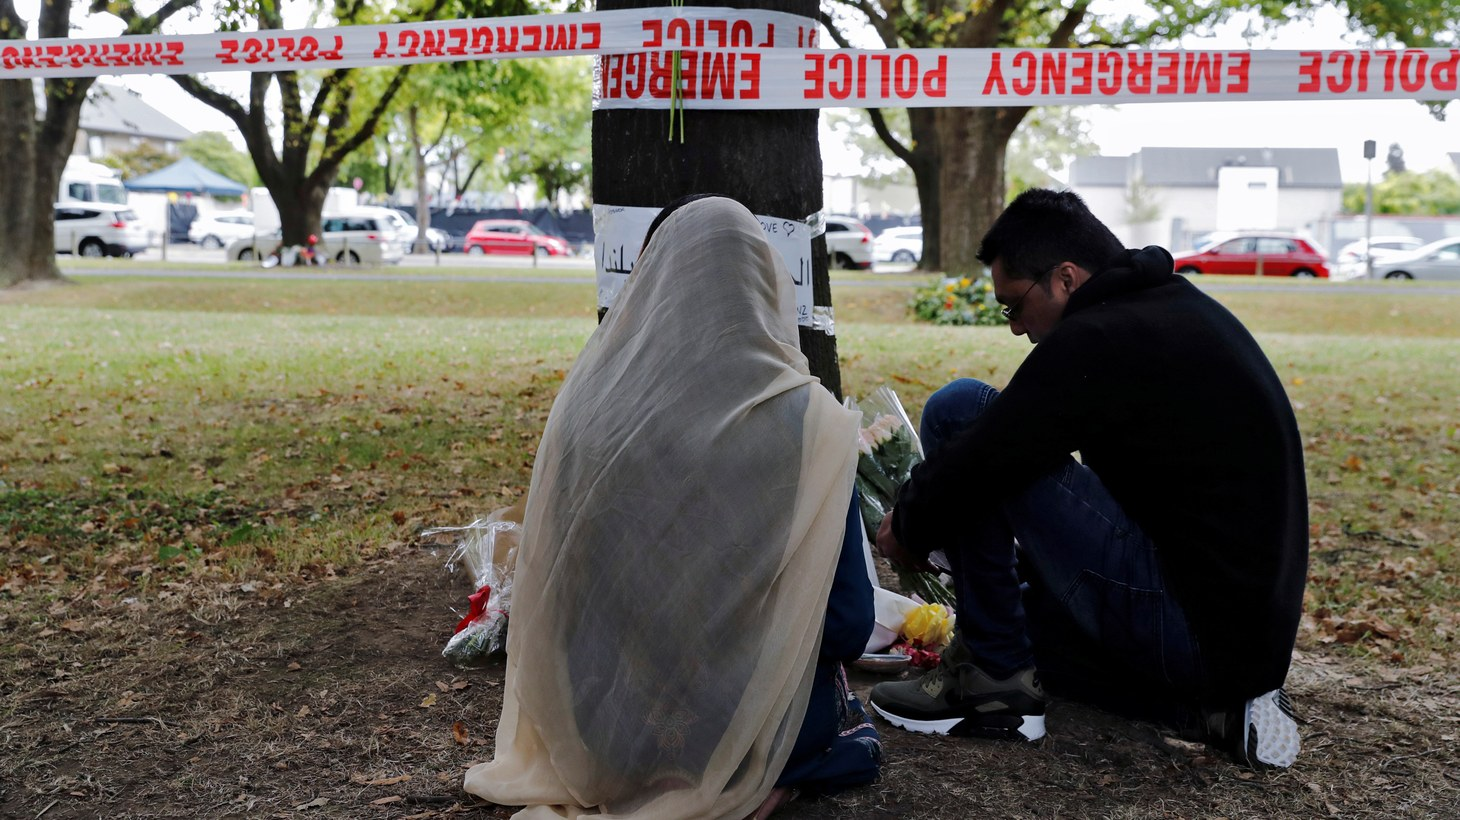 People visit at a memorial site for victims of the March 15 shooting, in front of the Masjid Al Noor mosque in Christchurch, New Zealand March 18th, 2019.